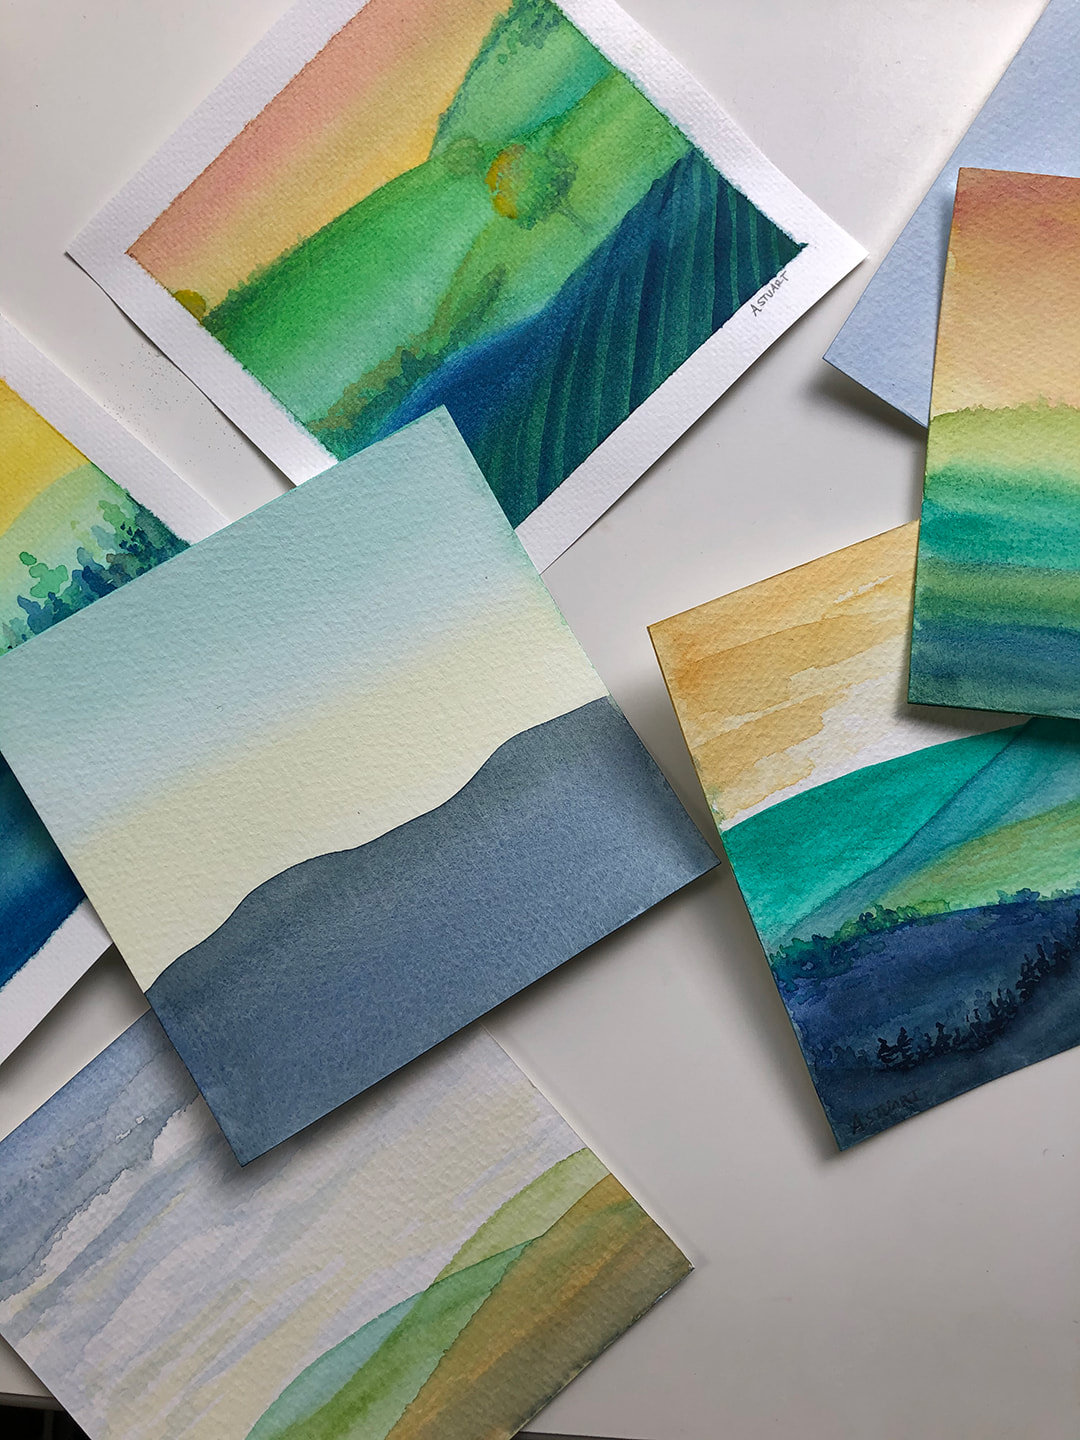 Layers of landscape paintings by Ashley Stuart